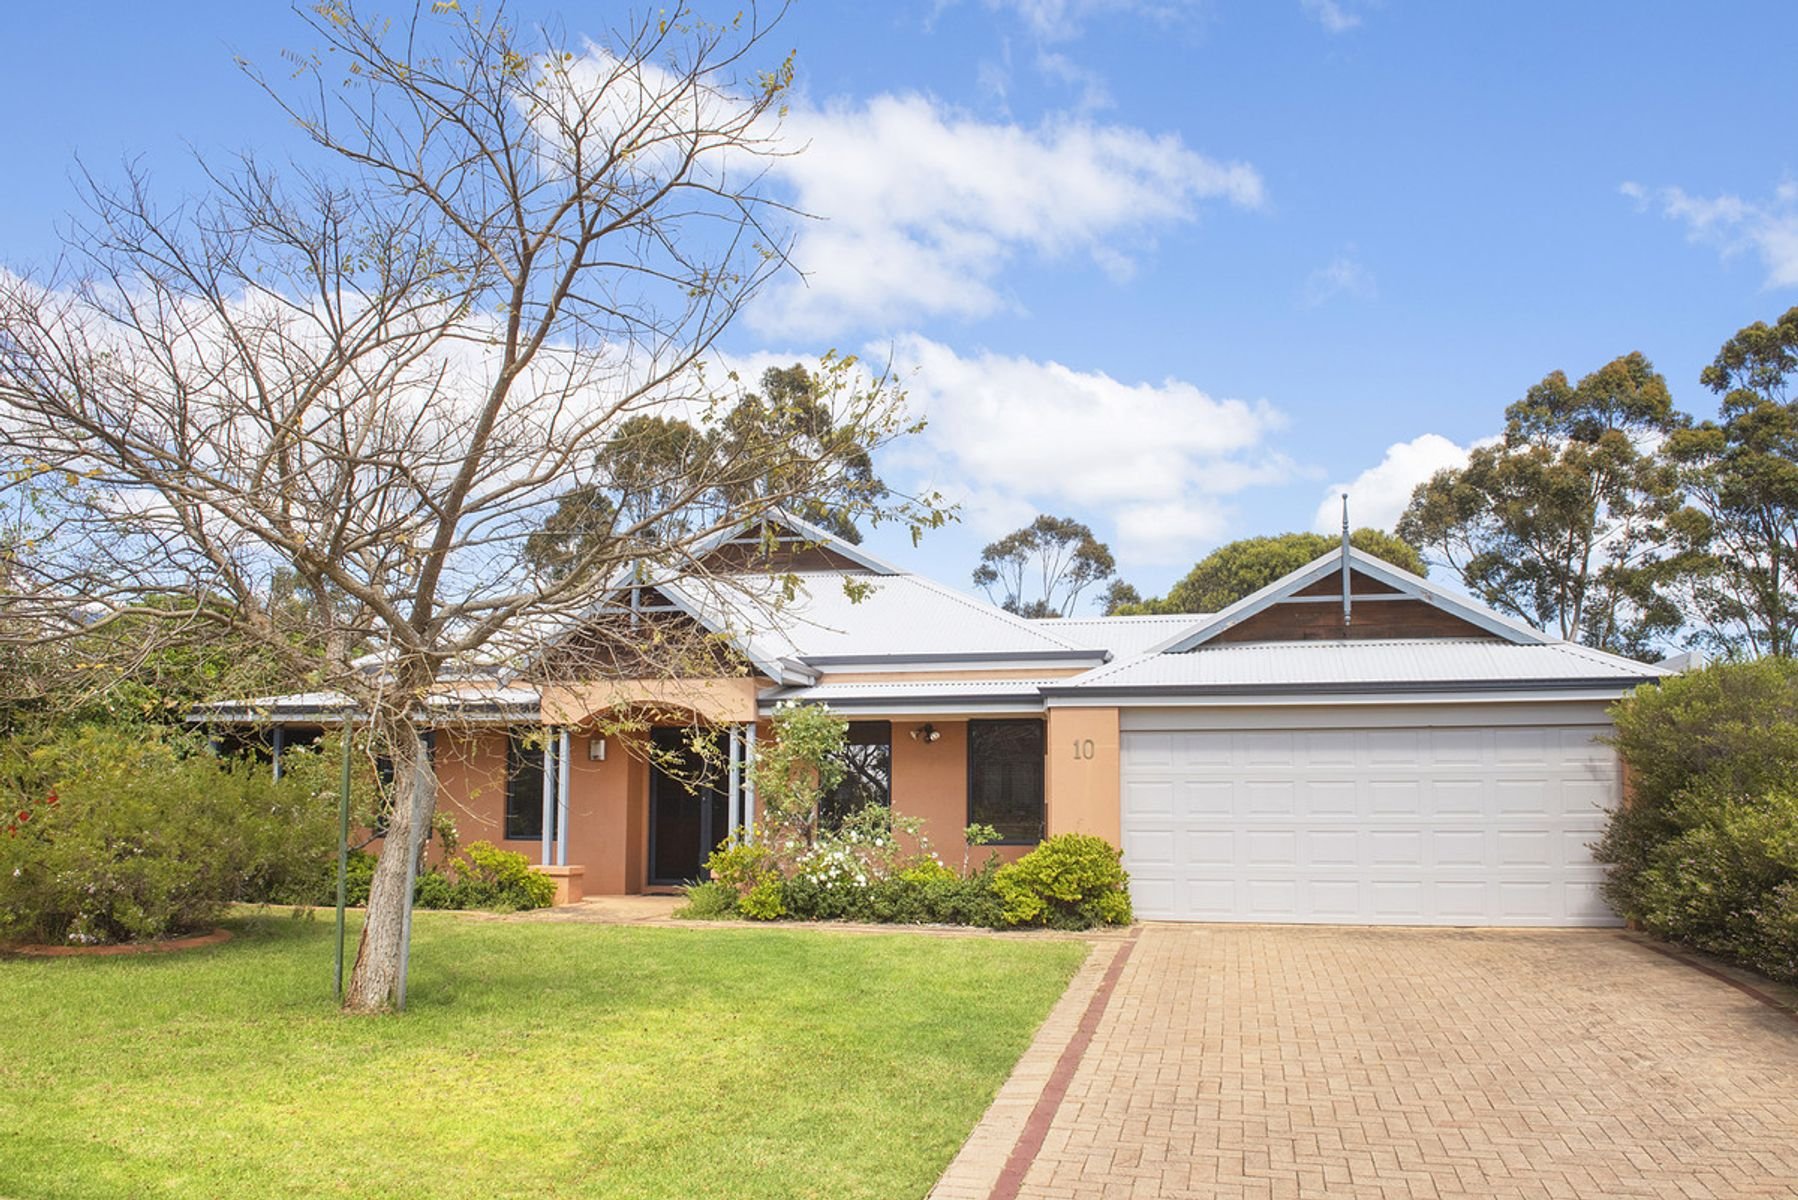 10 Bottlebrush Drive, Margaret River, WA 6285